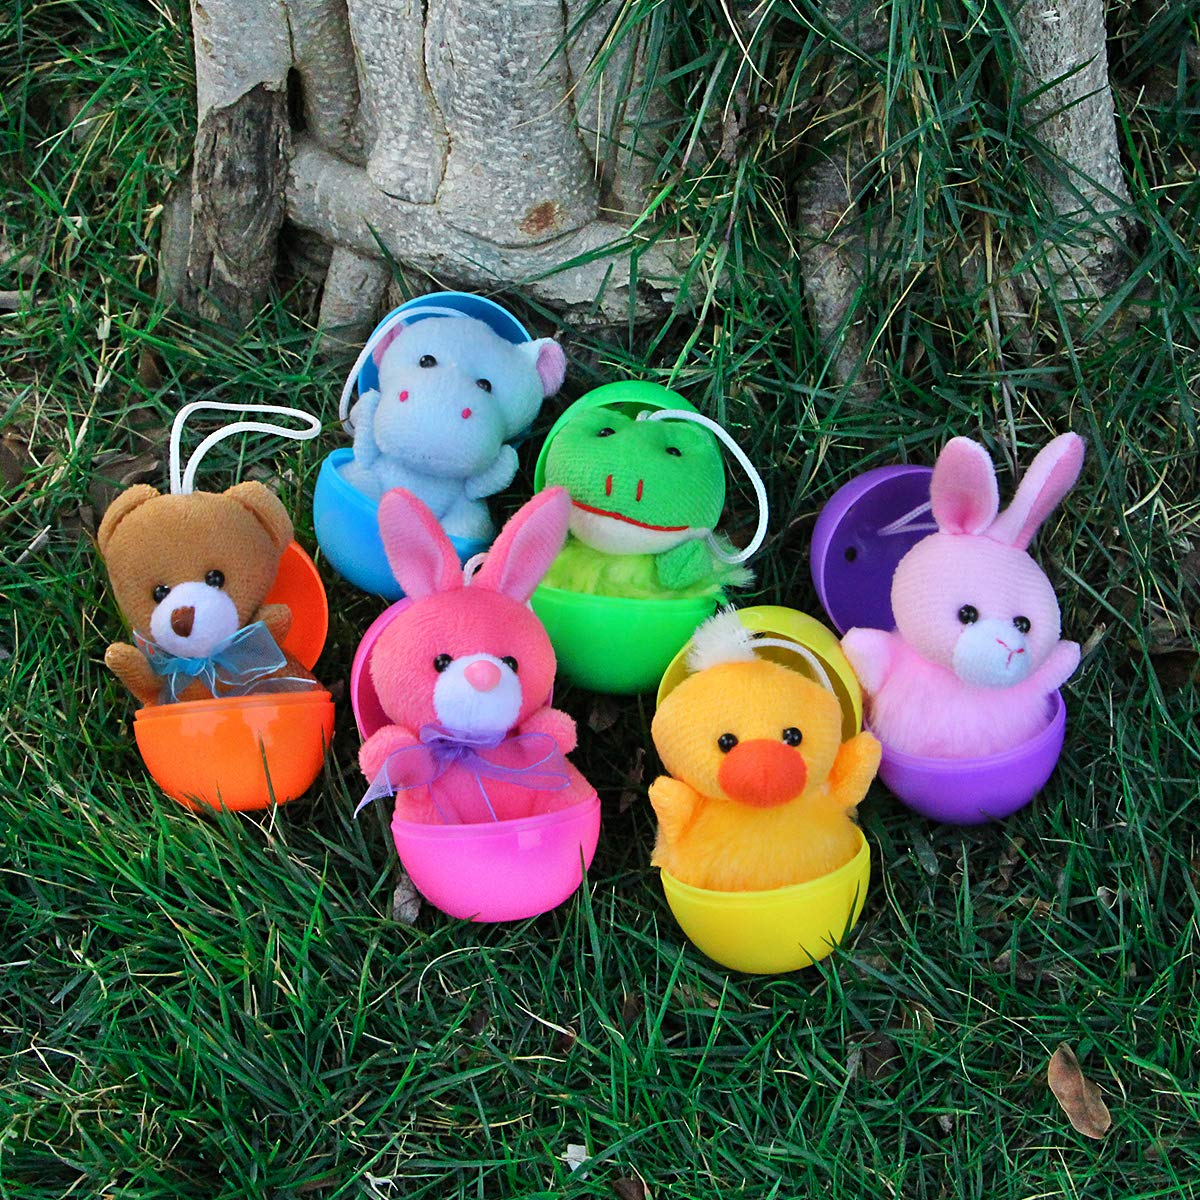 Super Soft Stuffed Animals For Babies, Aitbay Cute Small Stuffed Animal Keychain Set For Party Favors Carnival Prizes For Kids Prize Box Toy Assortment For Classroom Rewards 30 Pack Mini Plush Animals Toys Set Goodie Bag Fillers Party